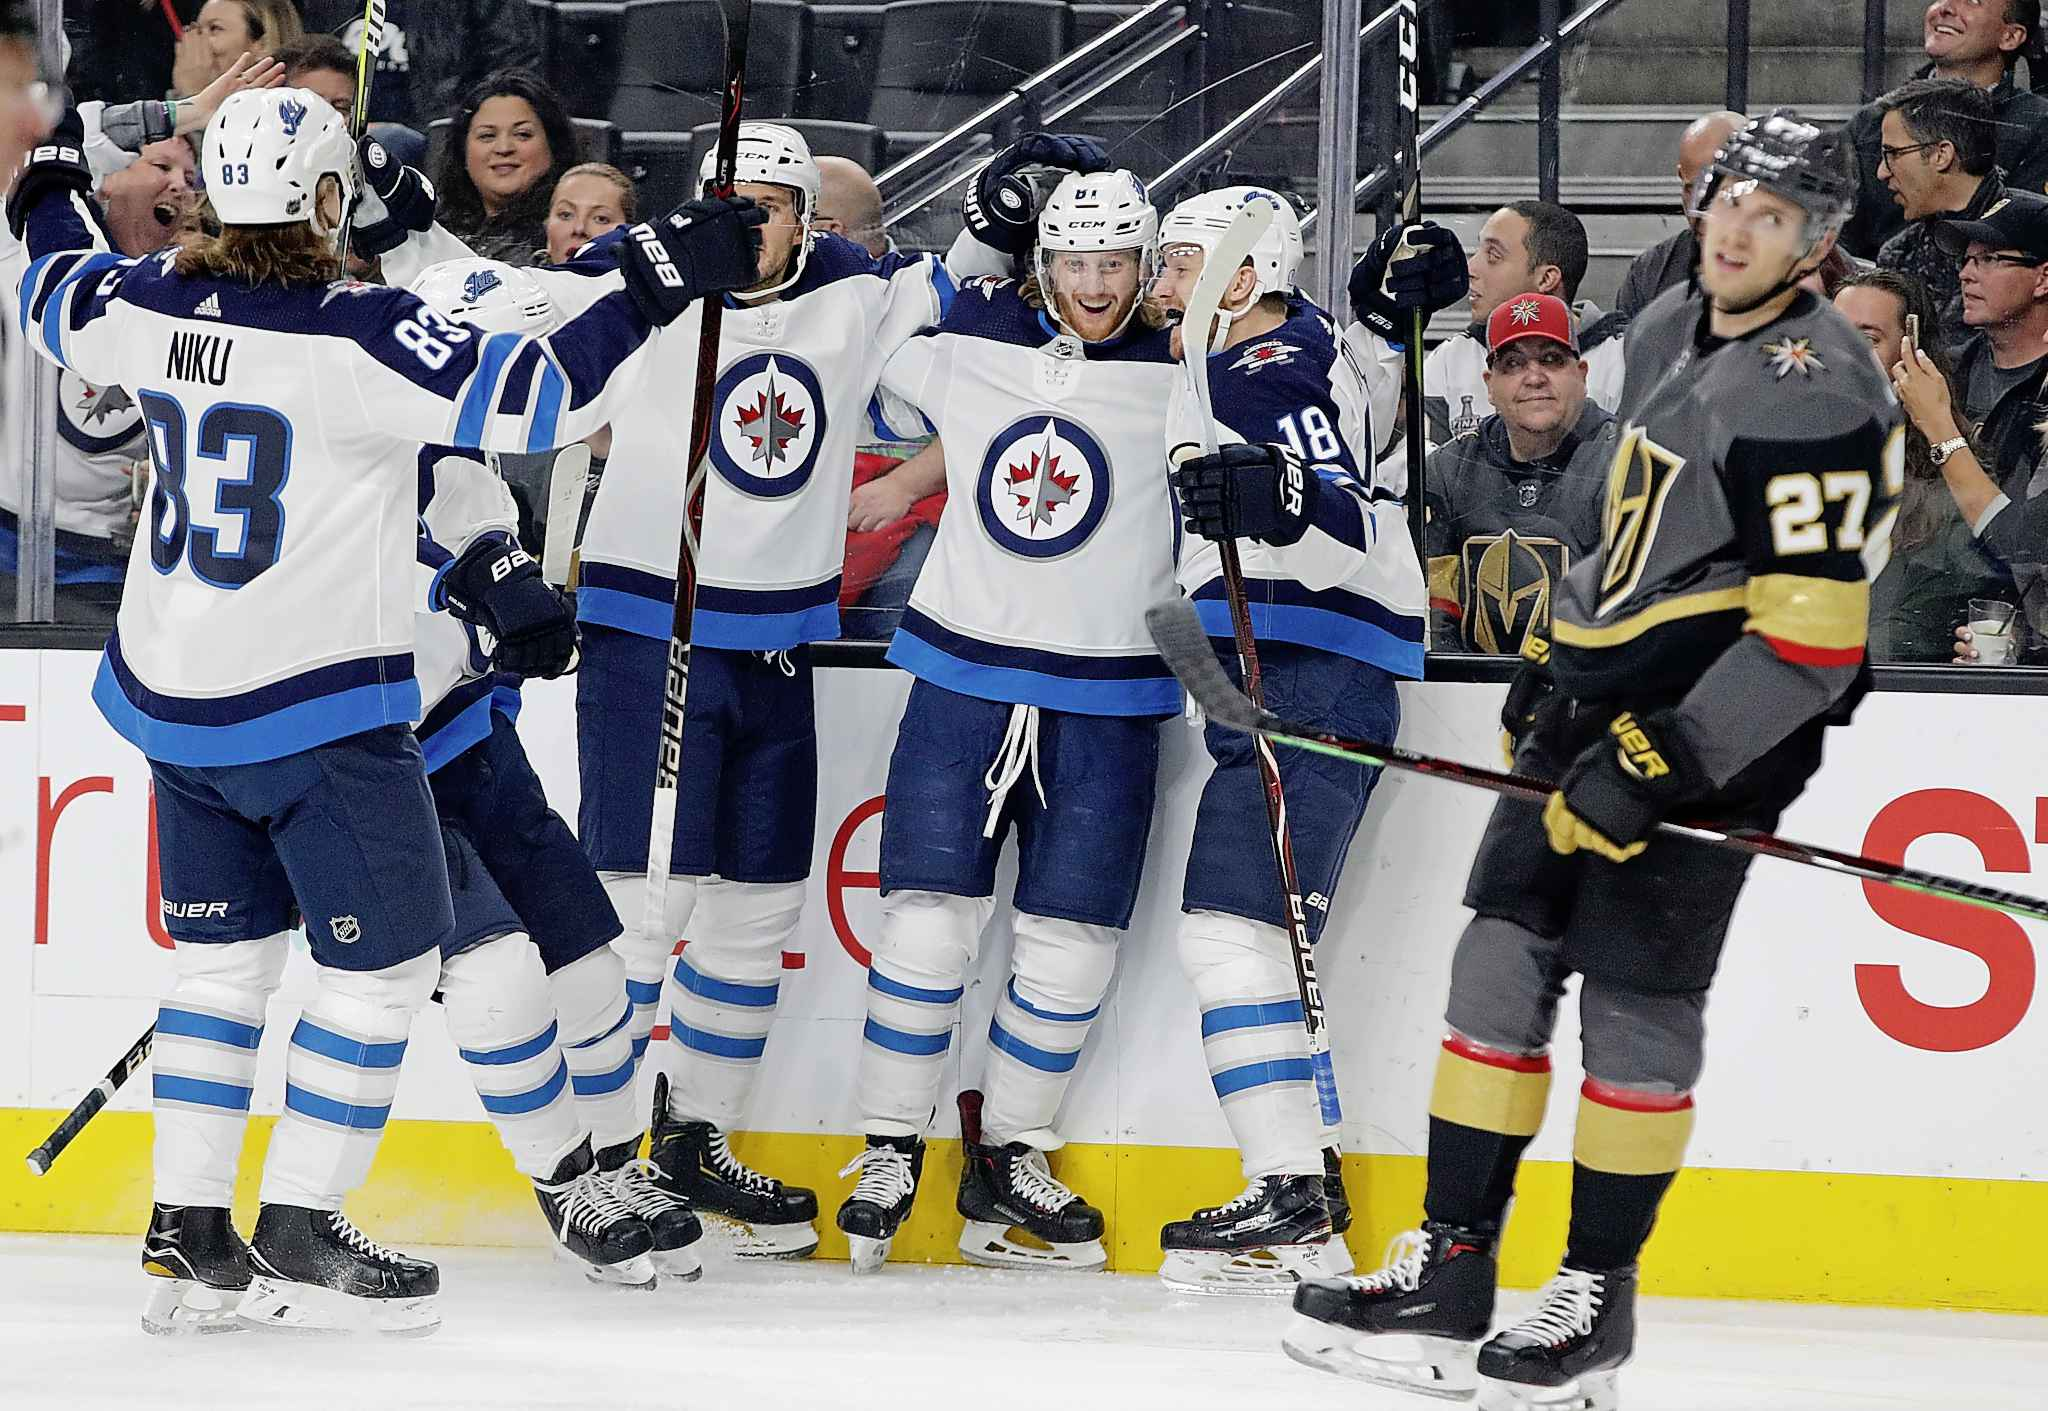 Winnipeg Jets left wing Kyle Connor, second from right at rear, celebrates with teammates after scoring against the Vegas Golden Knights during the first period Friday in Las Vegas.